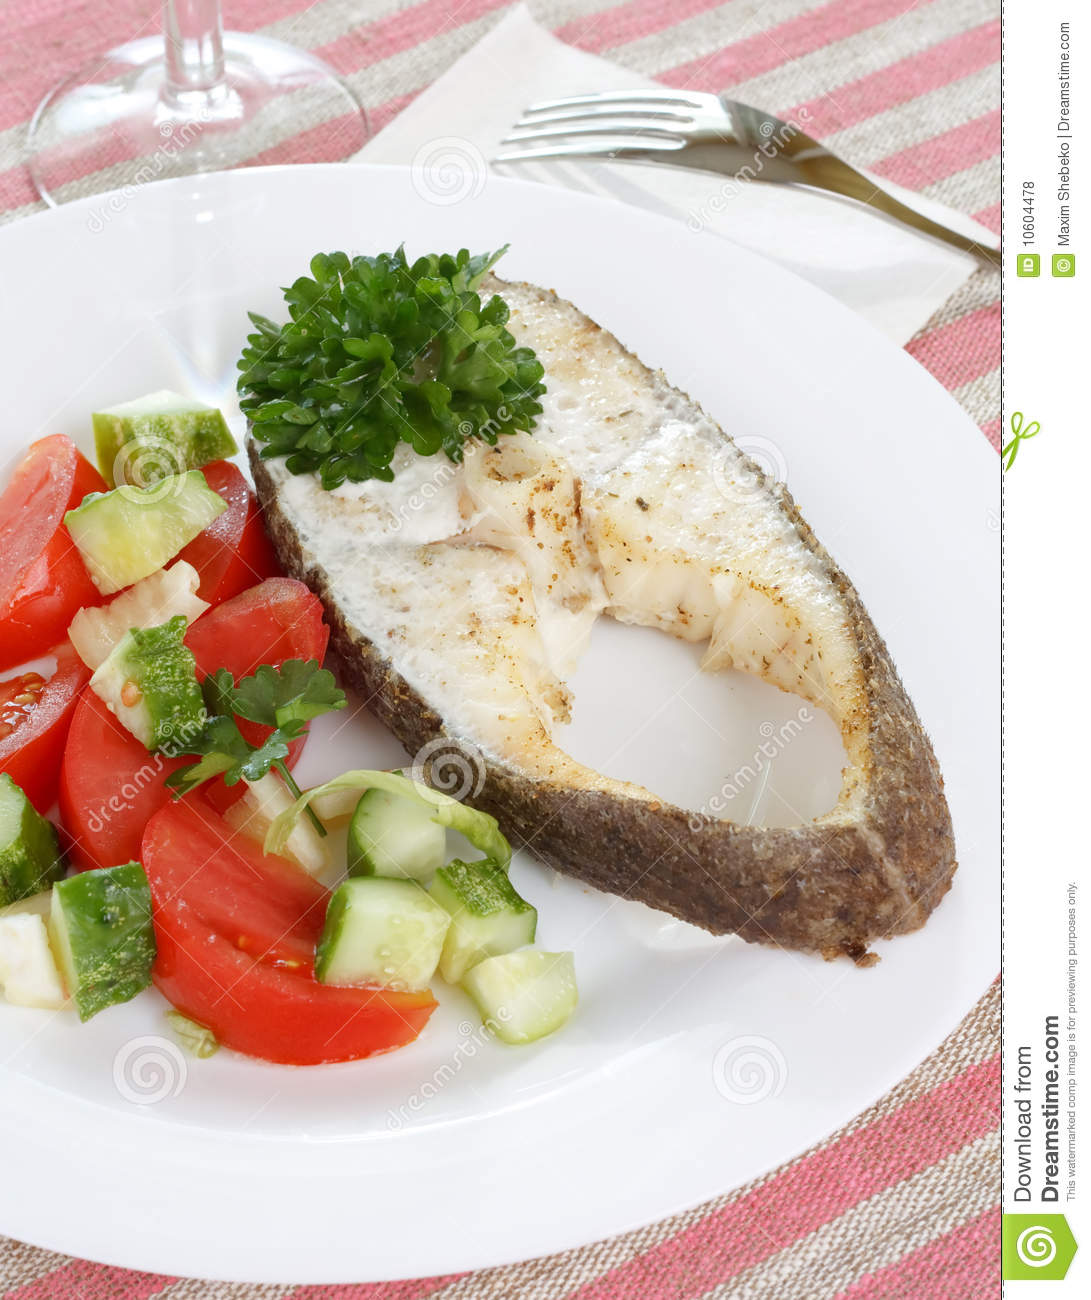 Fish with vegetables royalty free stock photos image for What vegetables go with fish